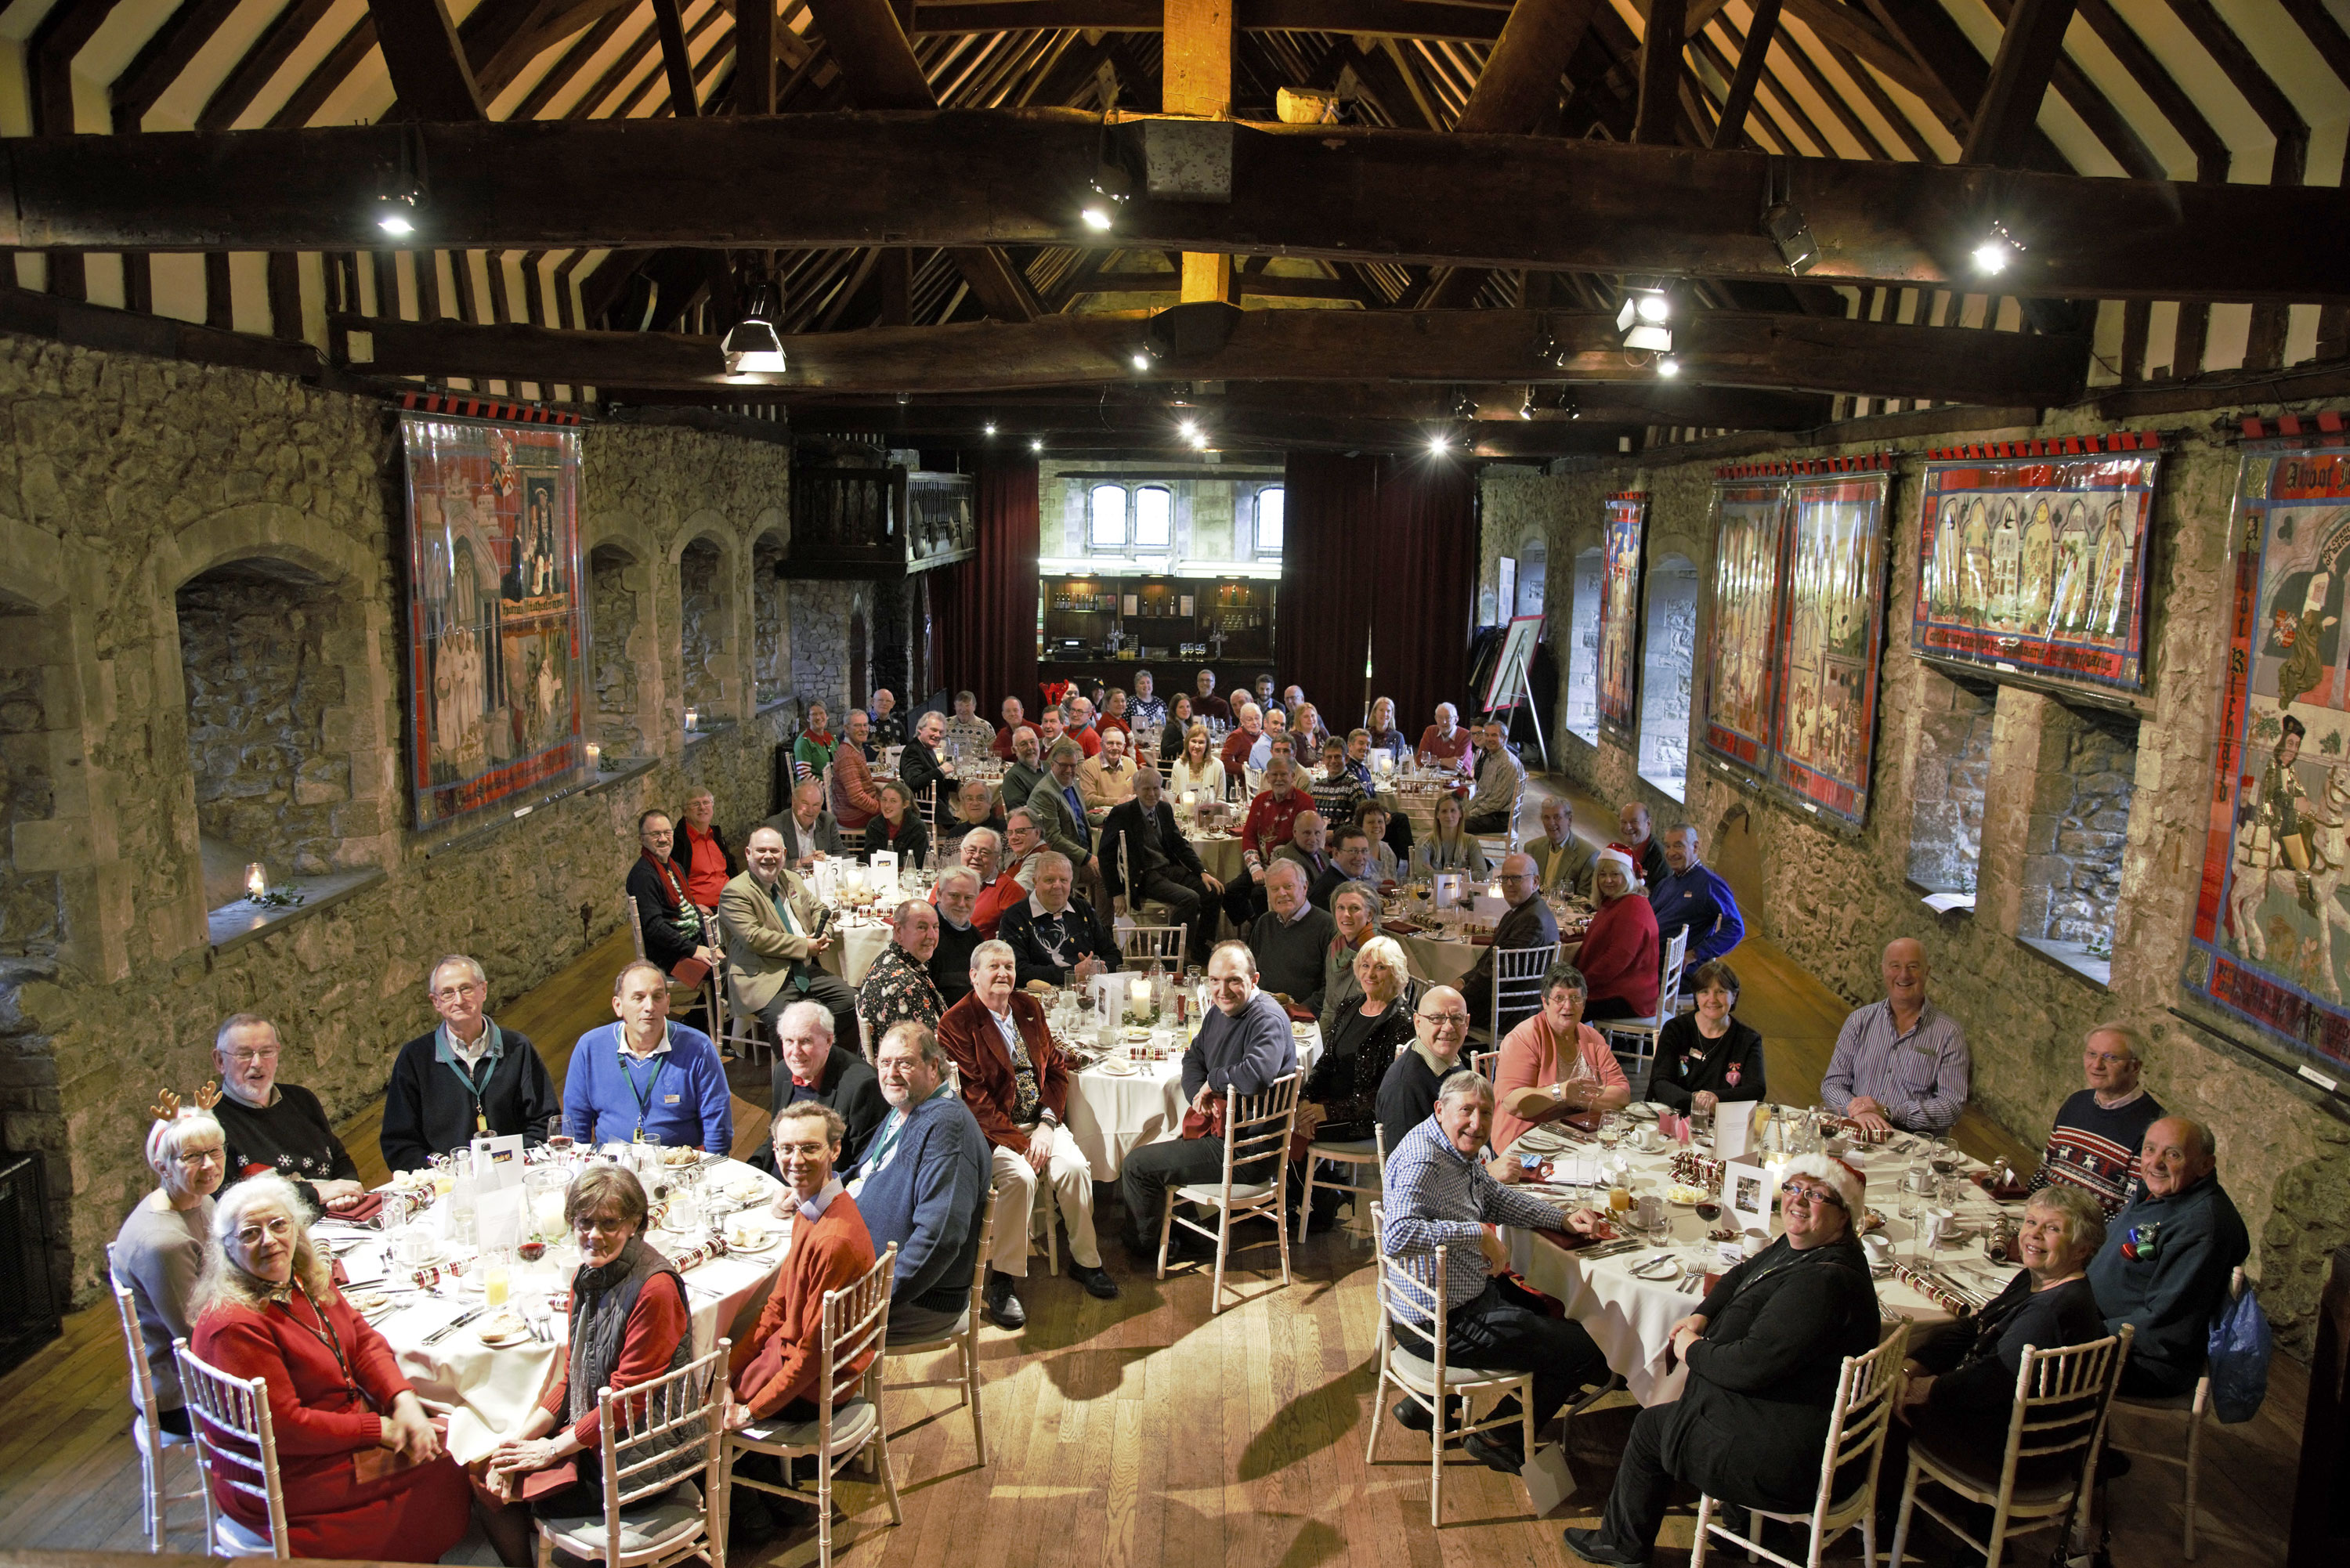 Volunteers enjoying Christmas dinner in the historic Domus at the National Motor Museum